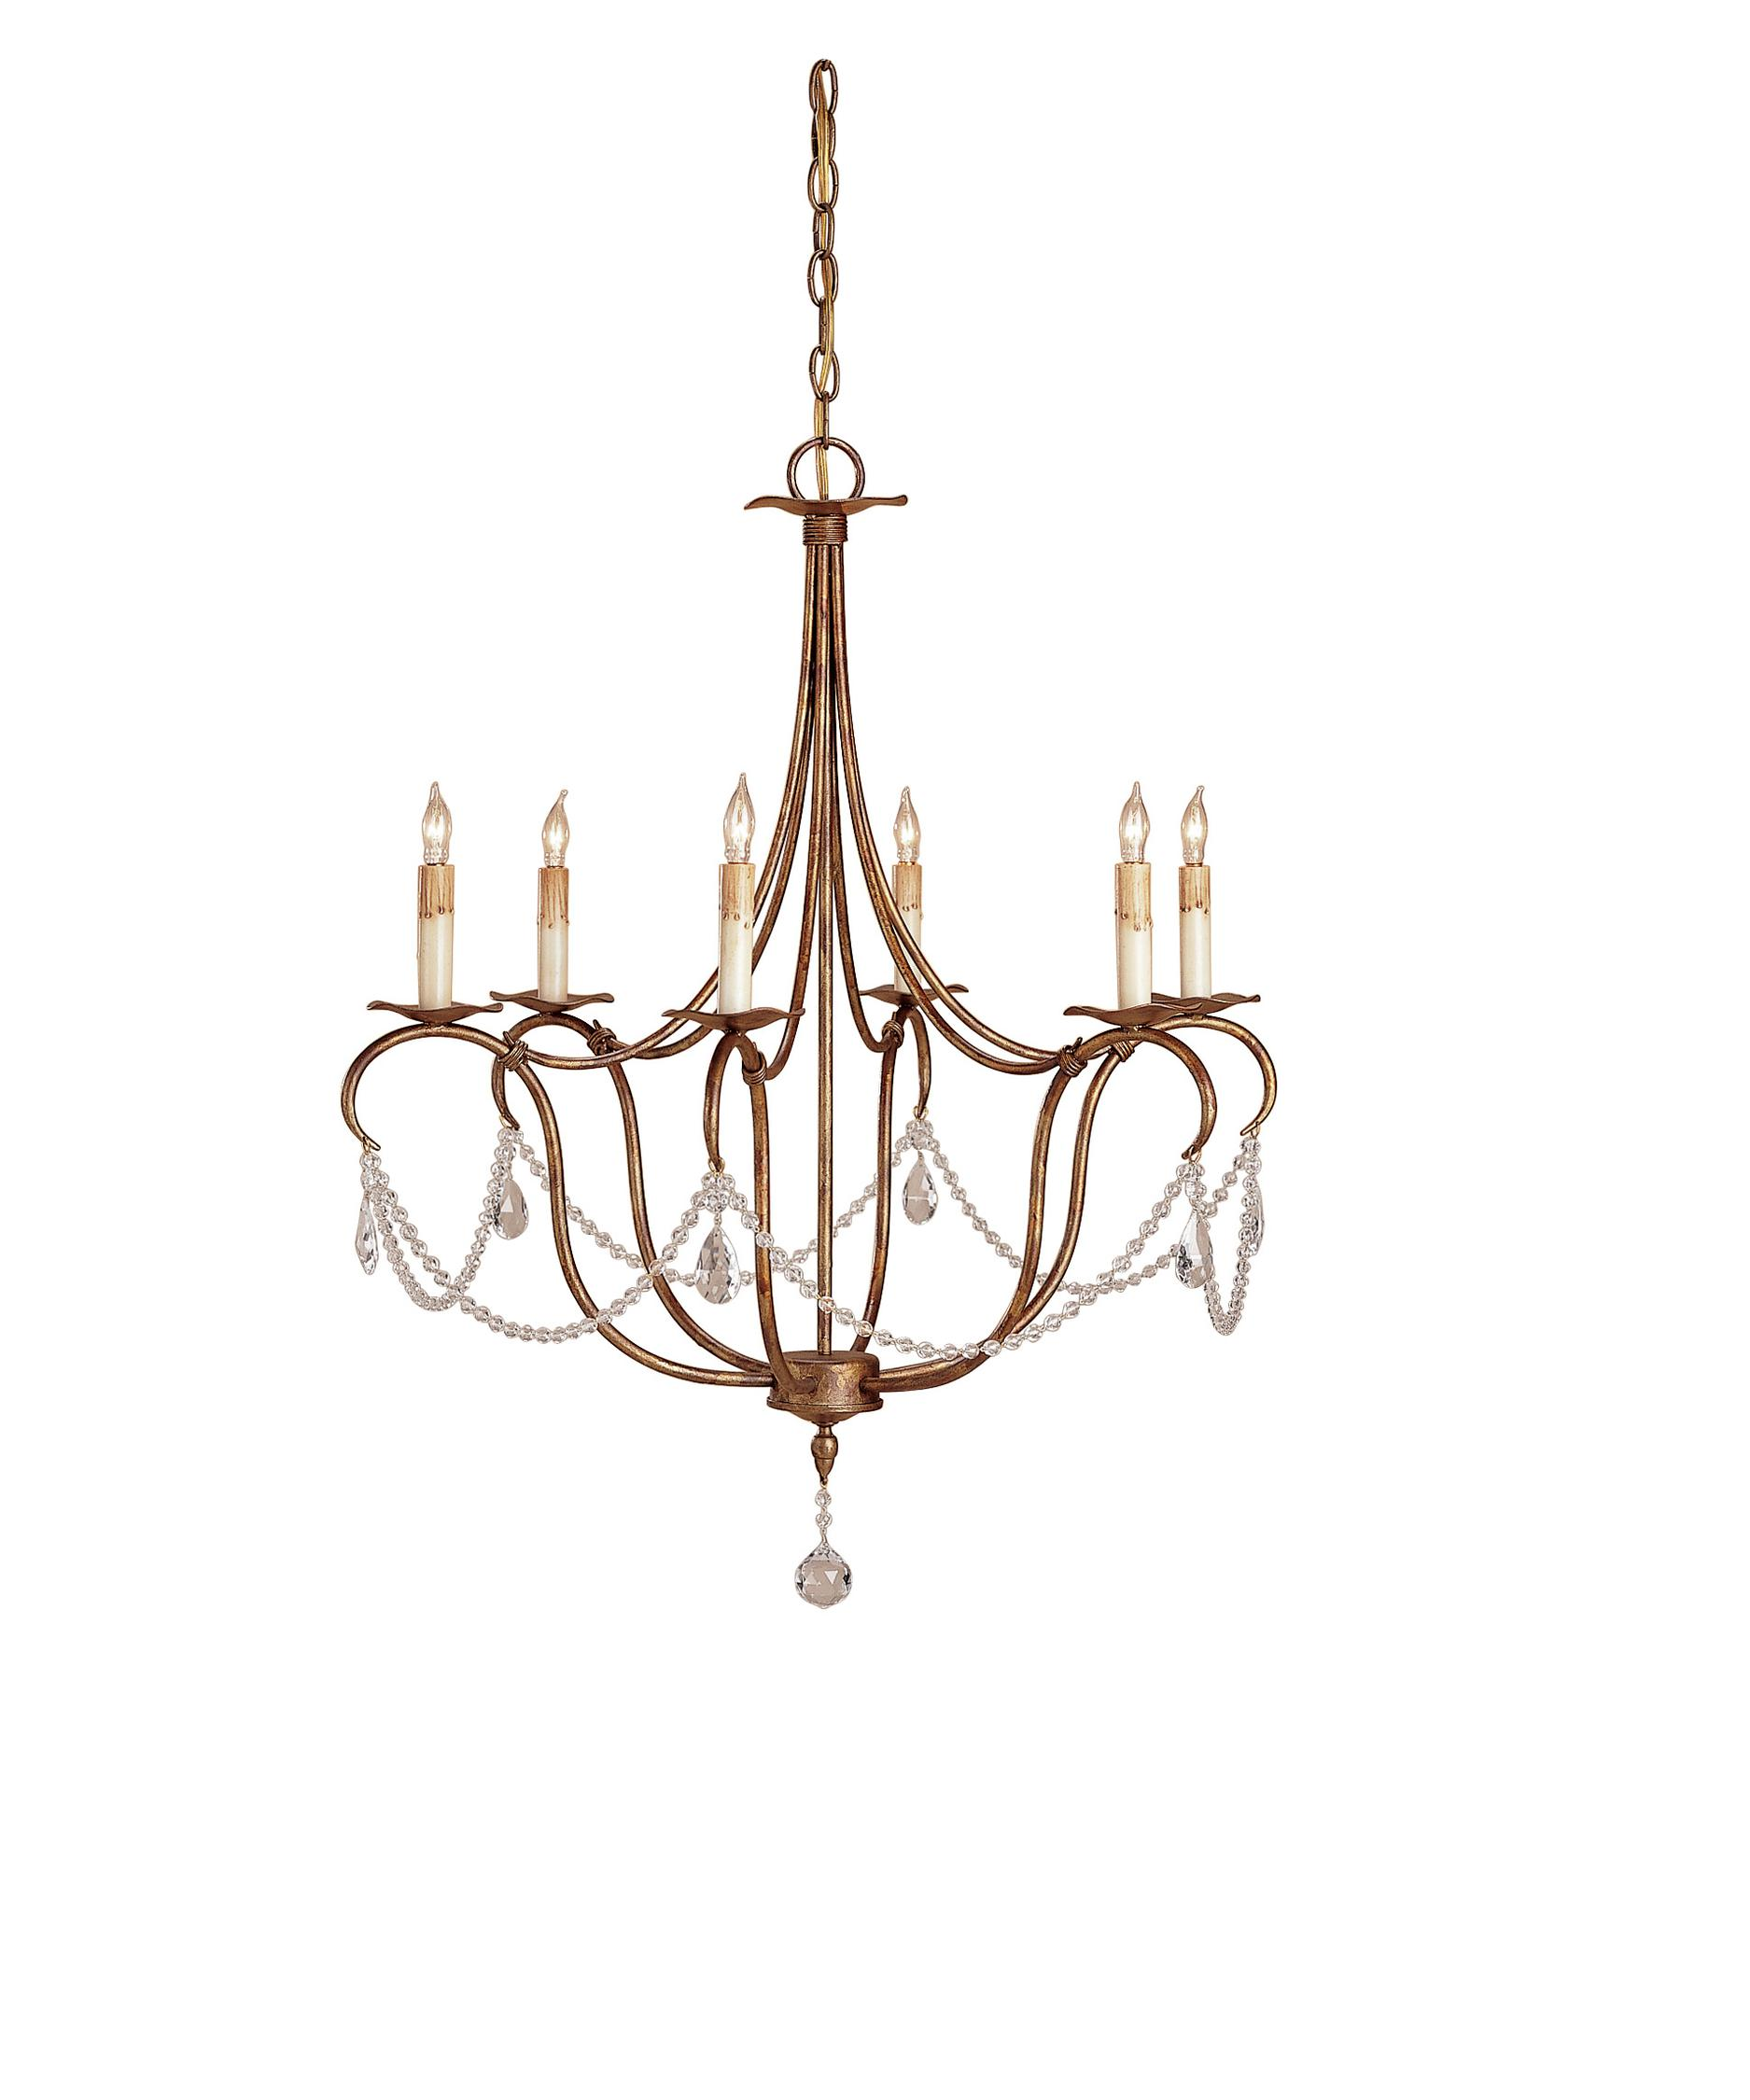 curry co lighting. shown in rhine gold finish curry co lighting d